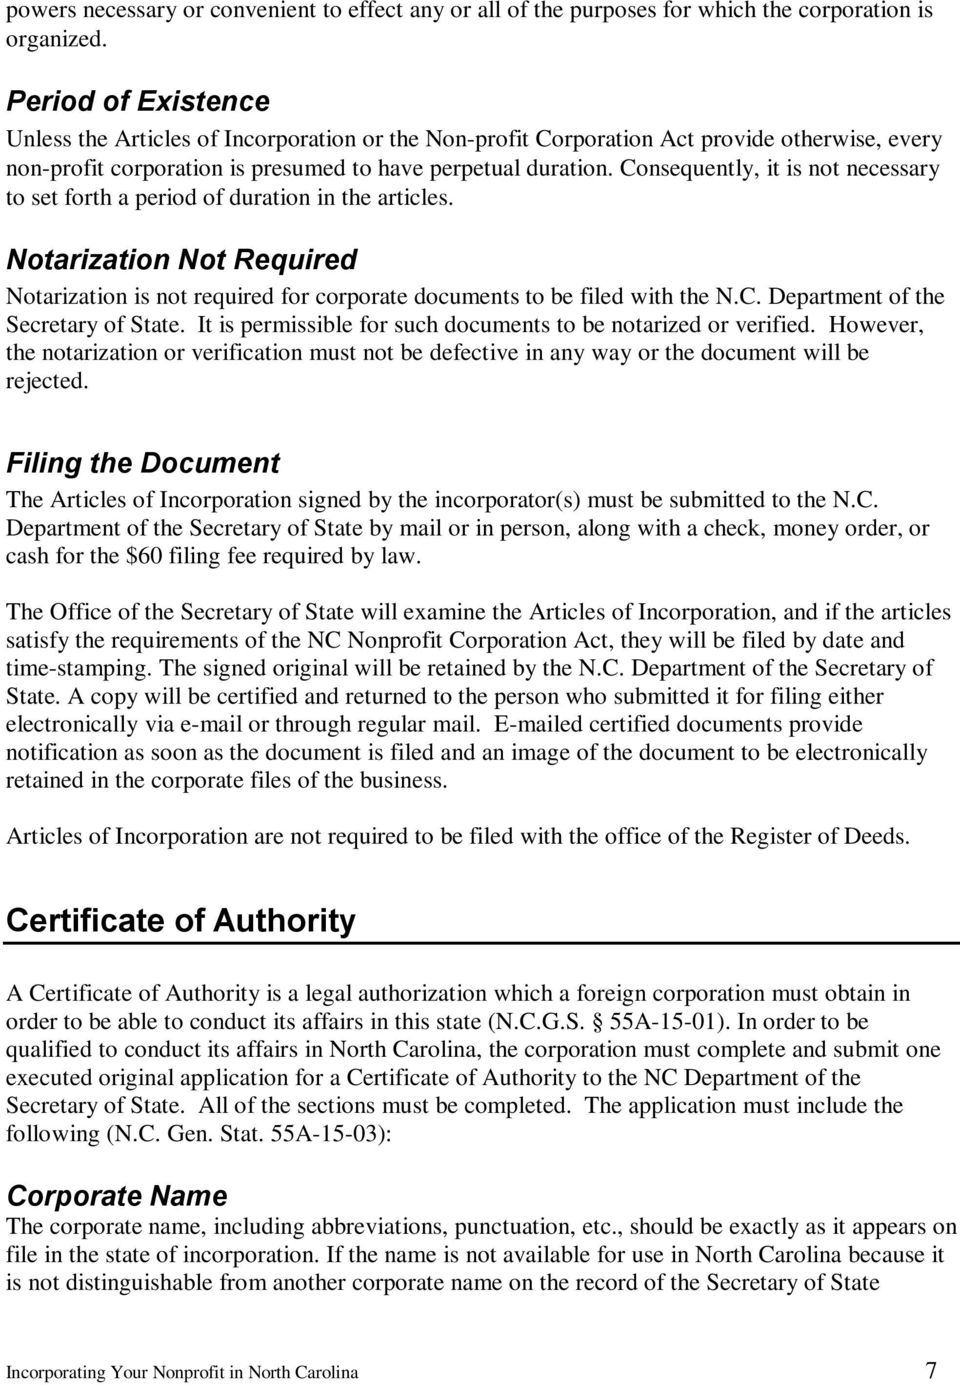 Consequently, it is not necessary to set forth a period of duration in the articles. Notarization Not Required Notarization is not required for corporate documents to be filed with the N.C. Department of the Secretary of State.